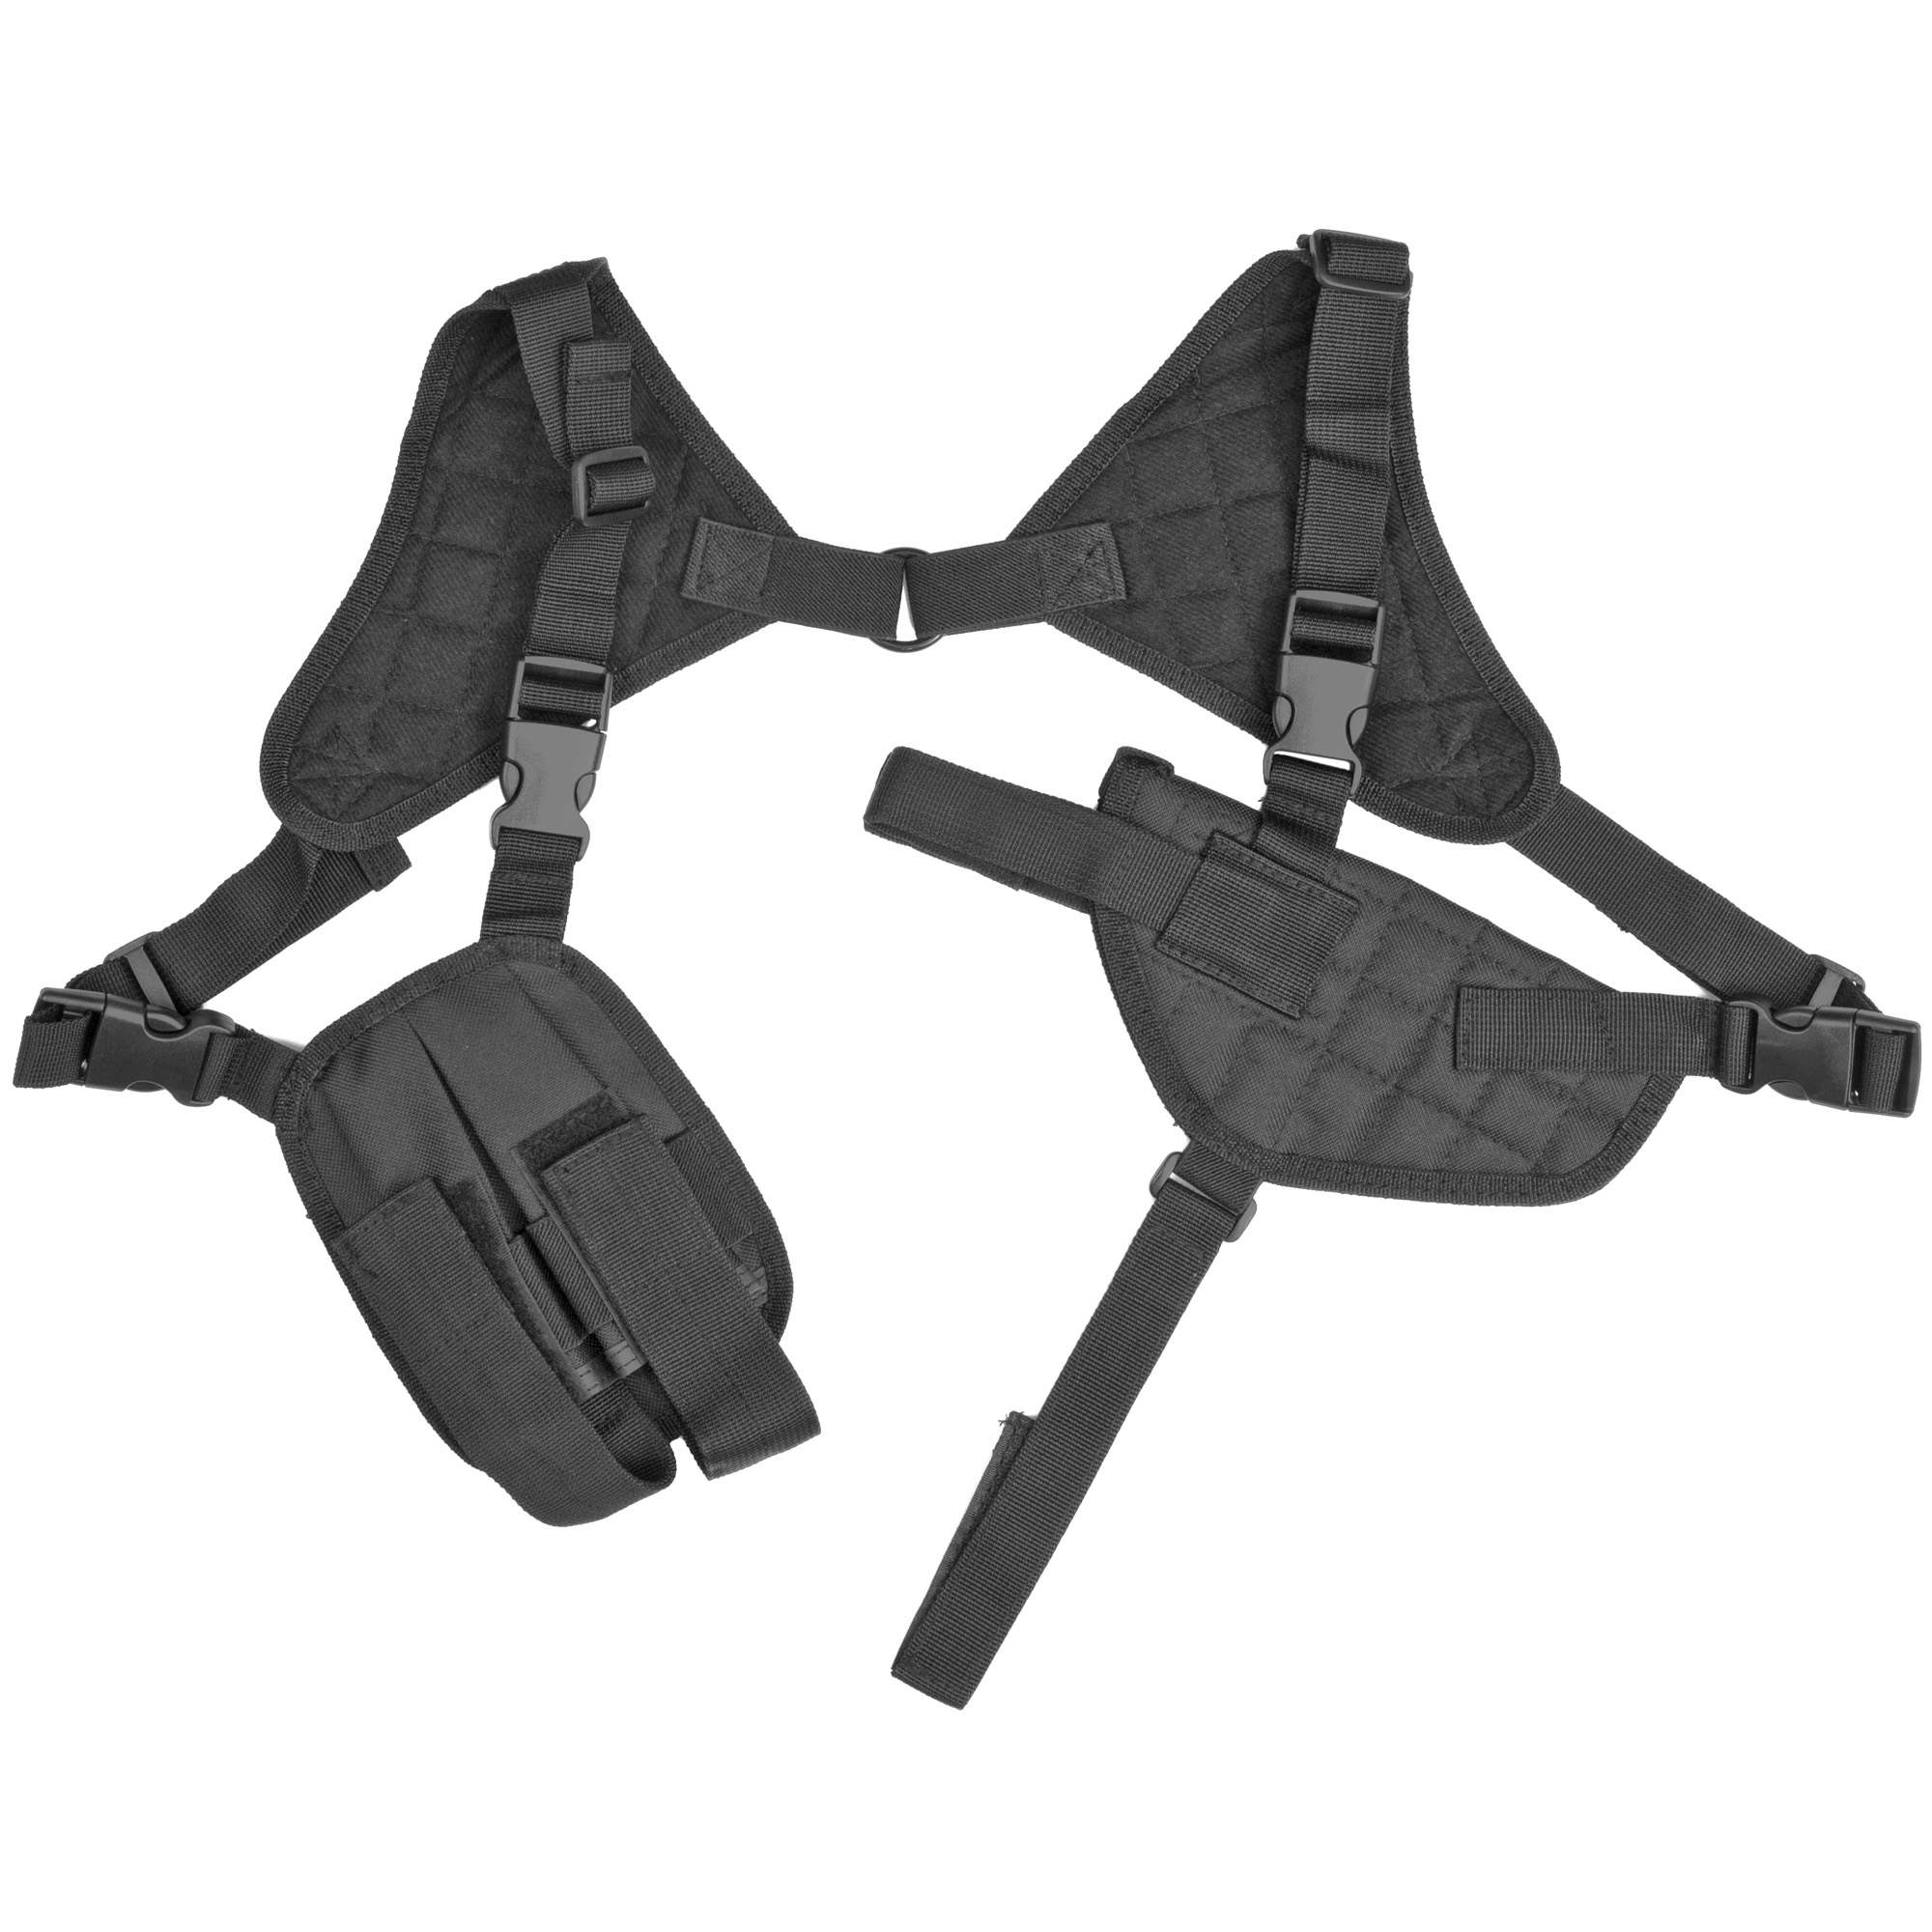 """This is a fully adjustable"""" ambidextrous"""" horizontal shoulder holster with a double magazine pouch. The shoulder straps are fully adjustable for length for a custom fit to your body and include elastic band section to expand and contract with your body movements."""